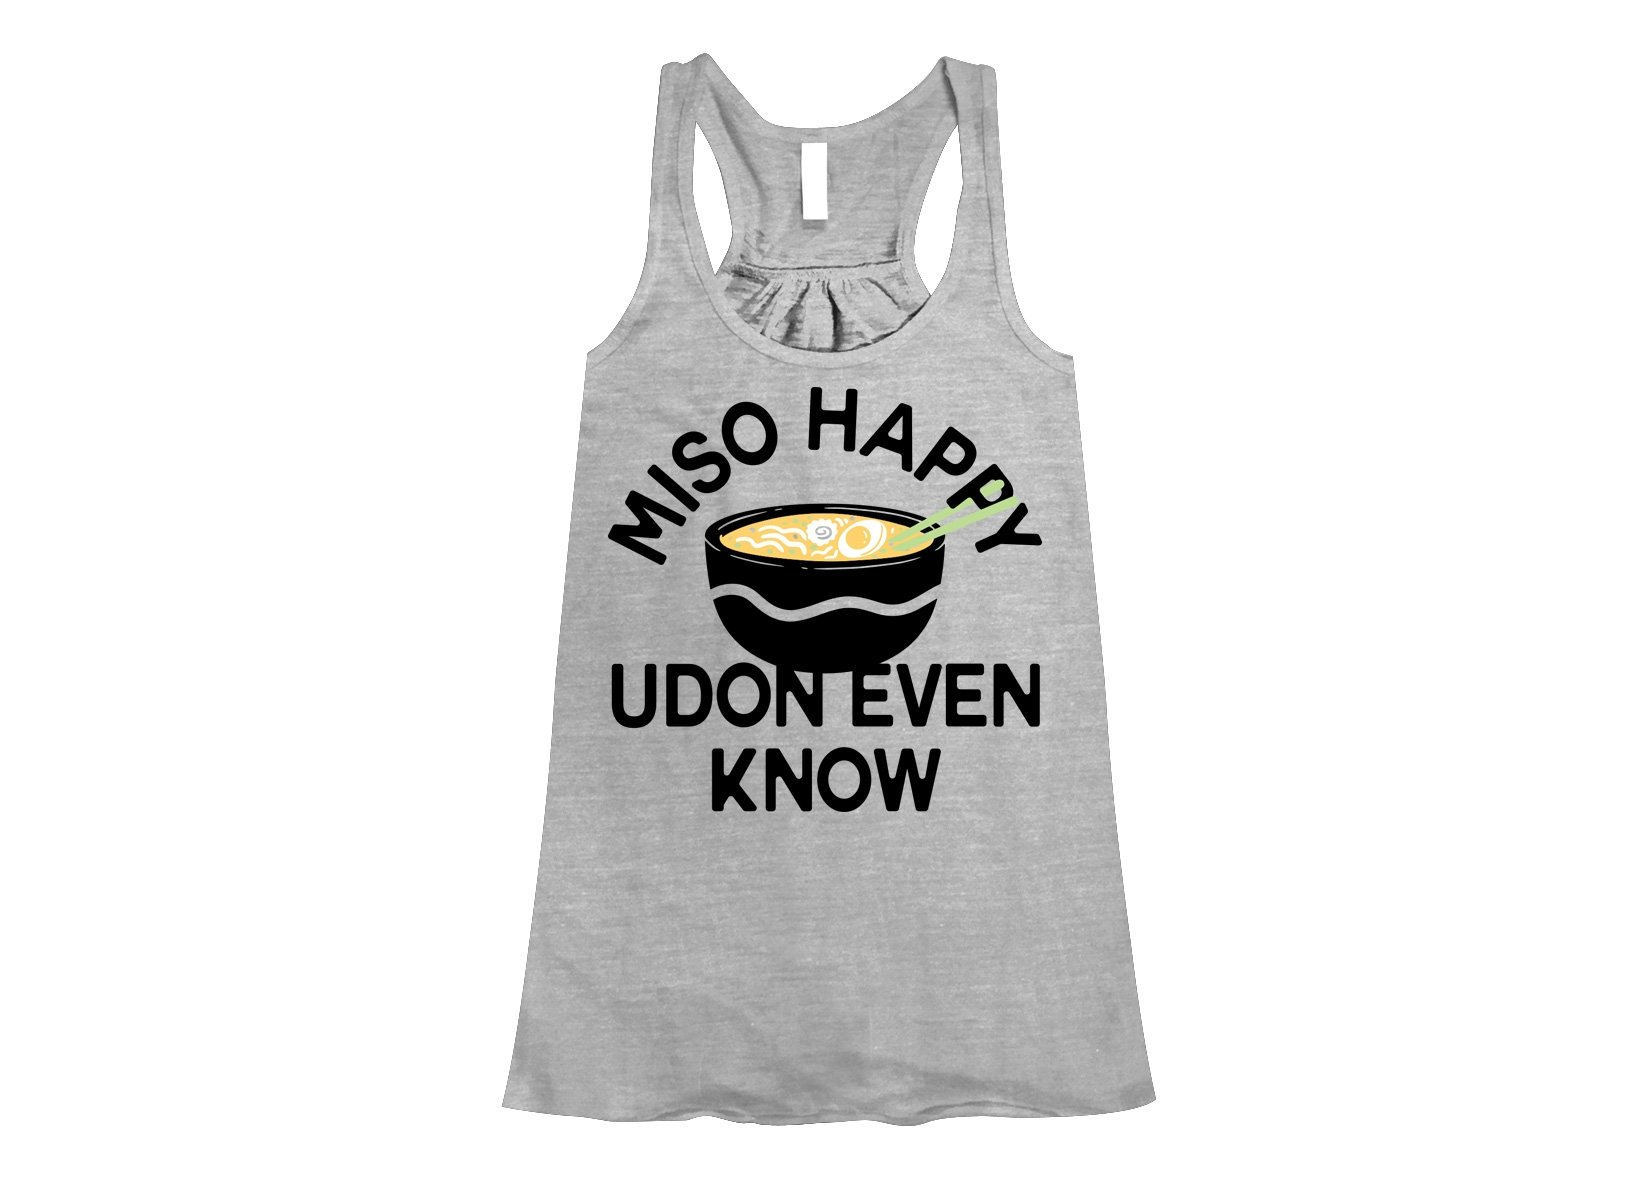 Miso Happy on Womens Tanks T-Shirt